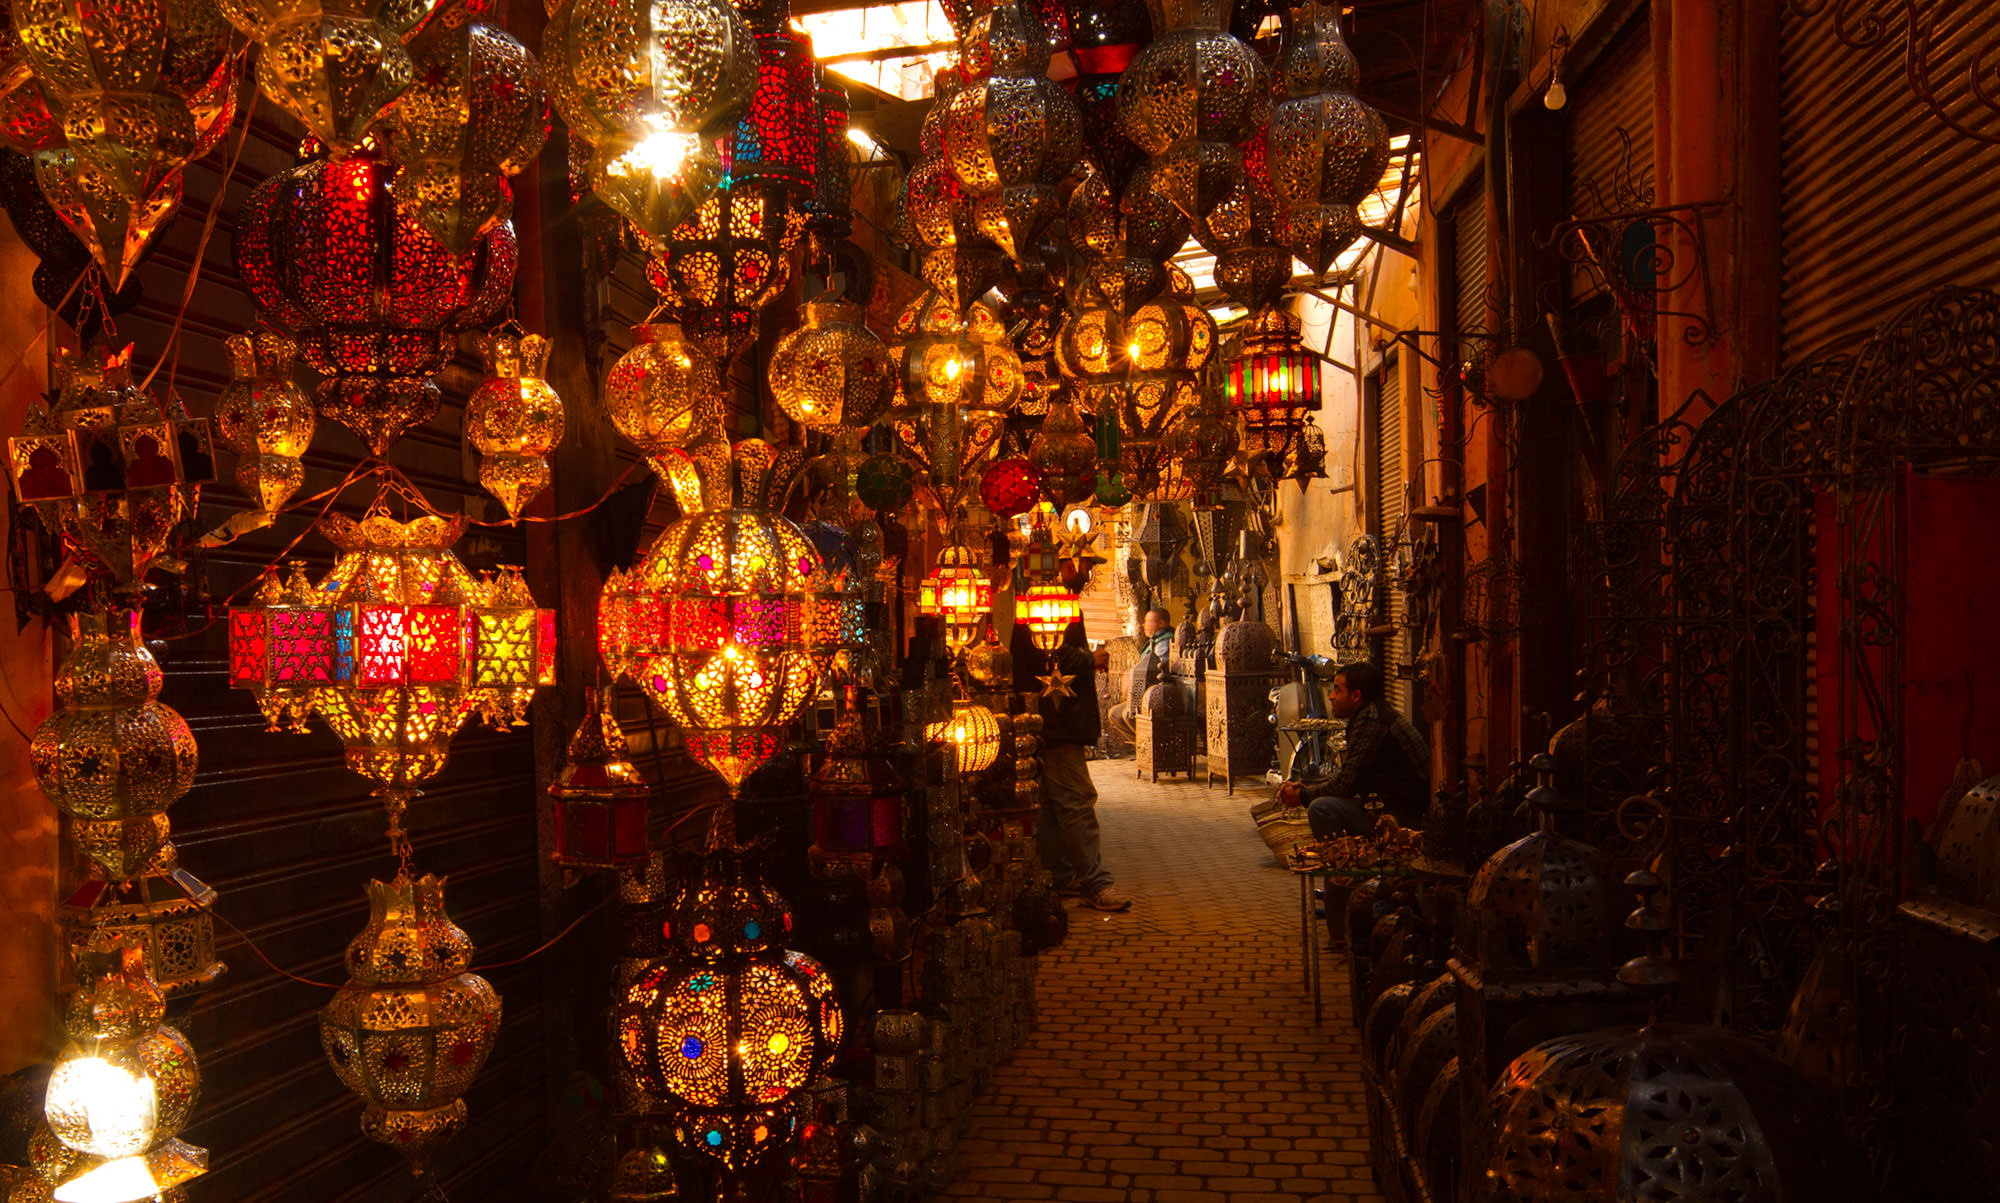 Lamps for sale in the Marrakech souks